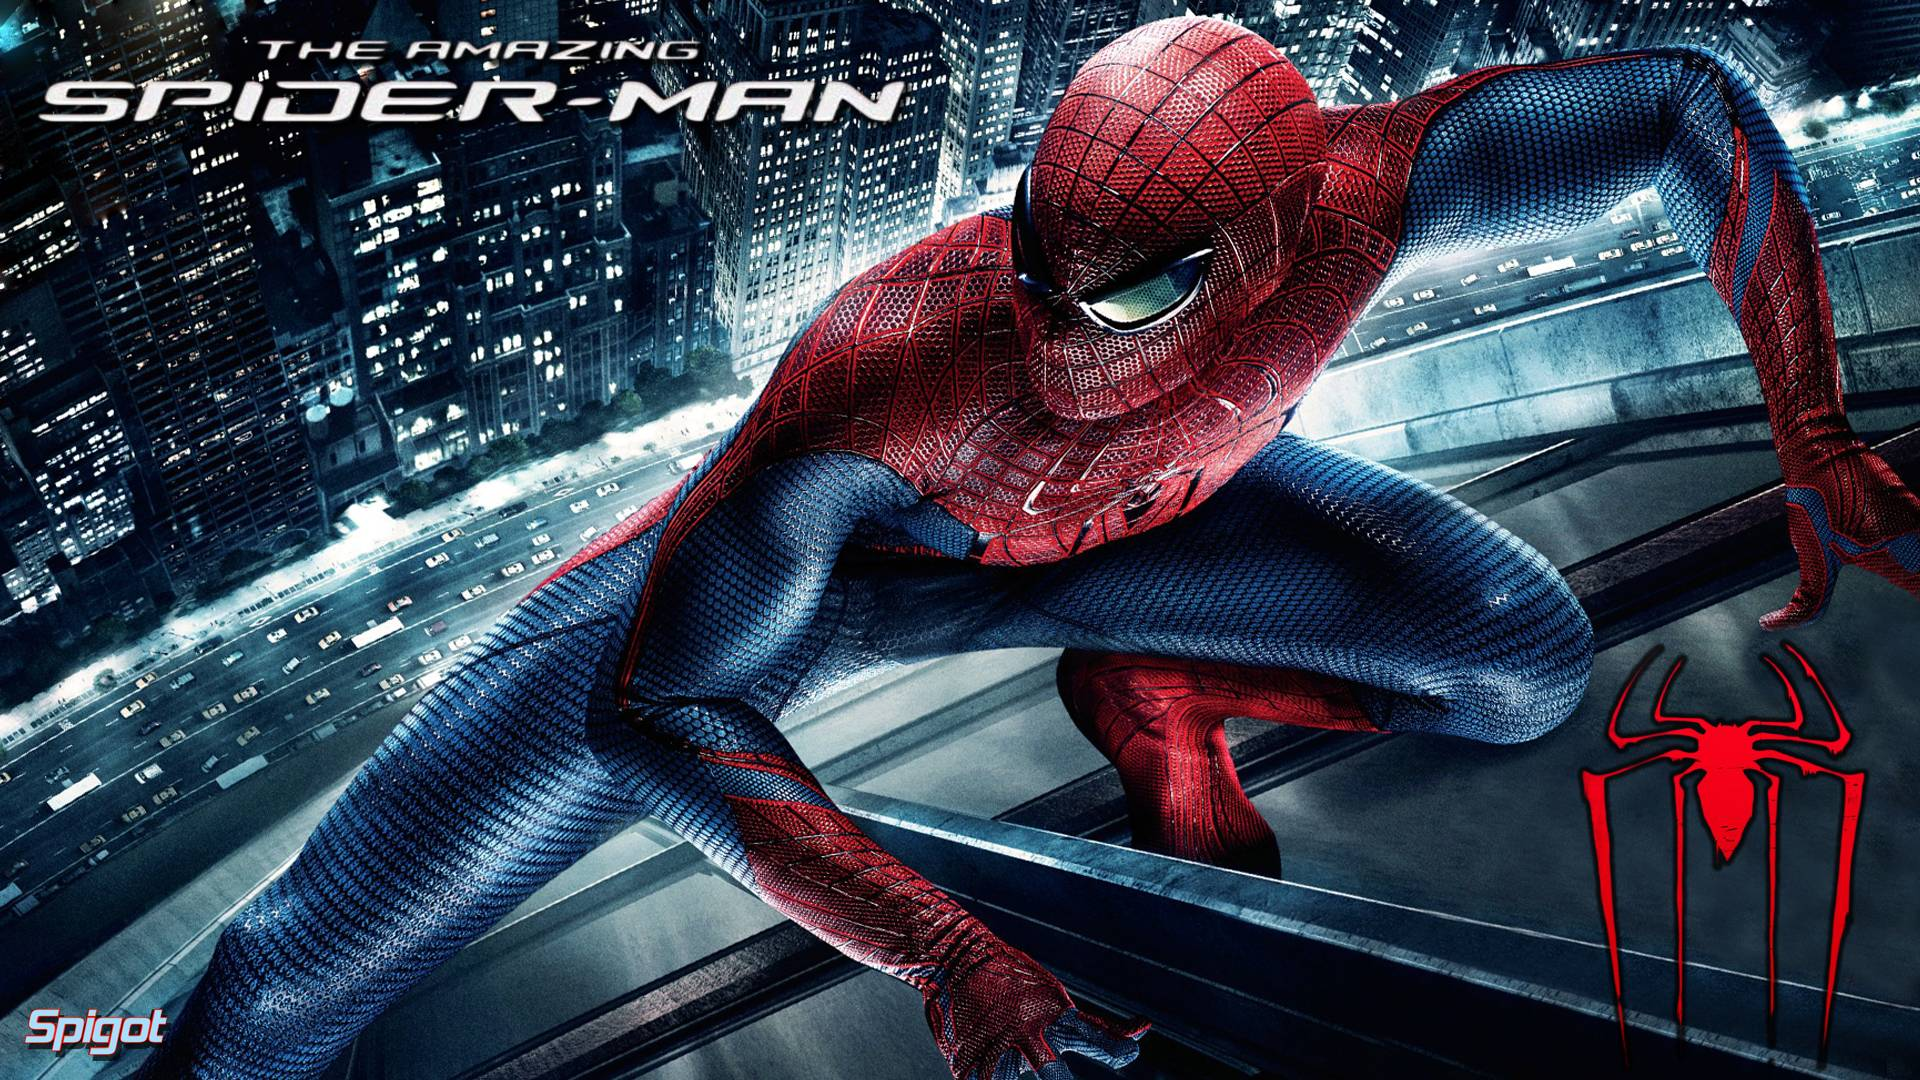 Spider Man Image Download: Free Spiderman Wallpapers